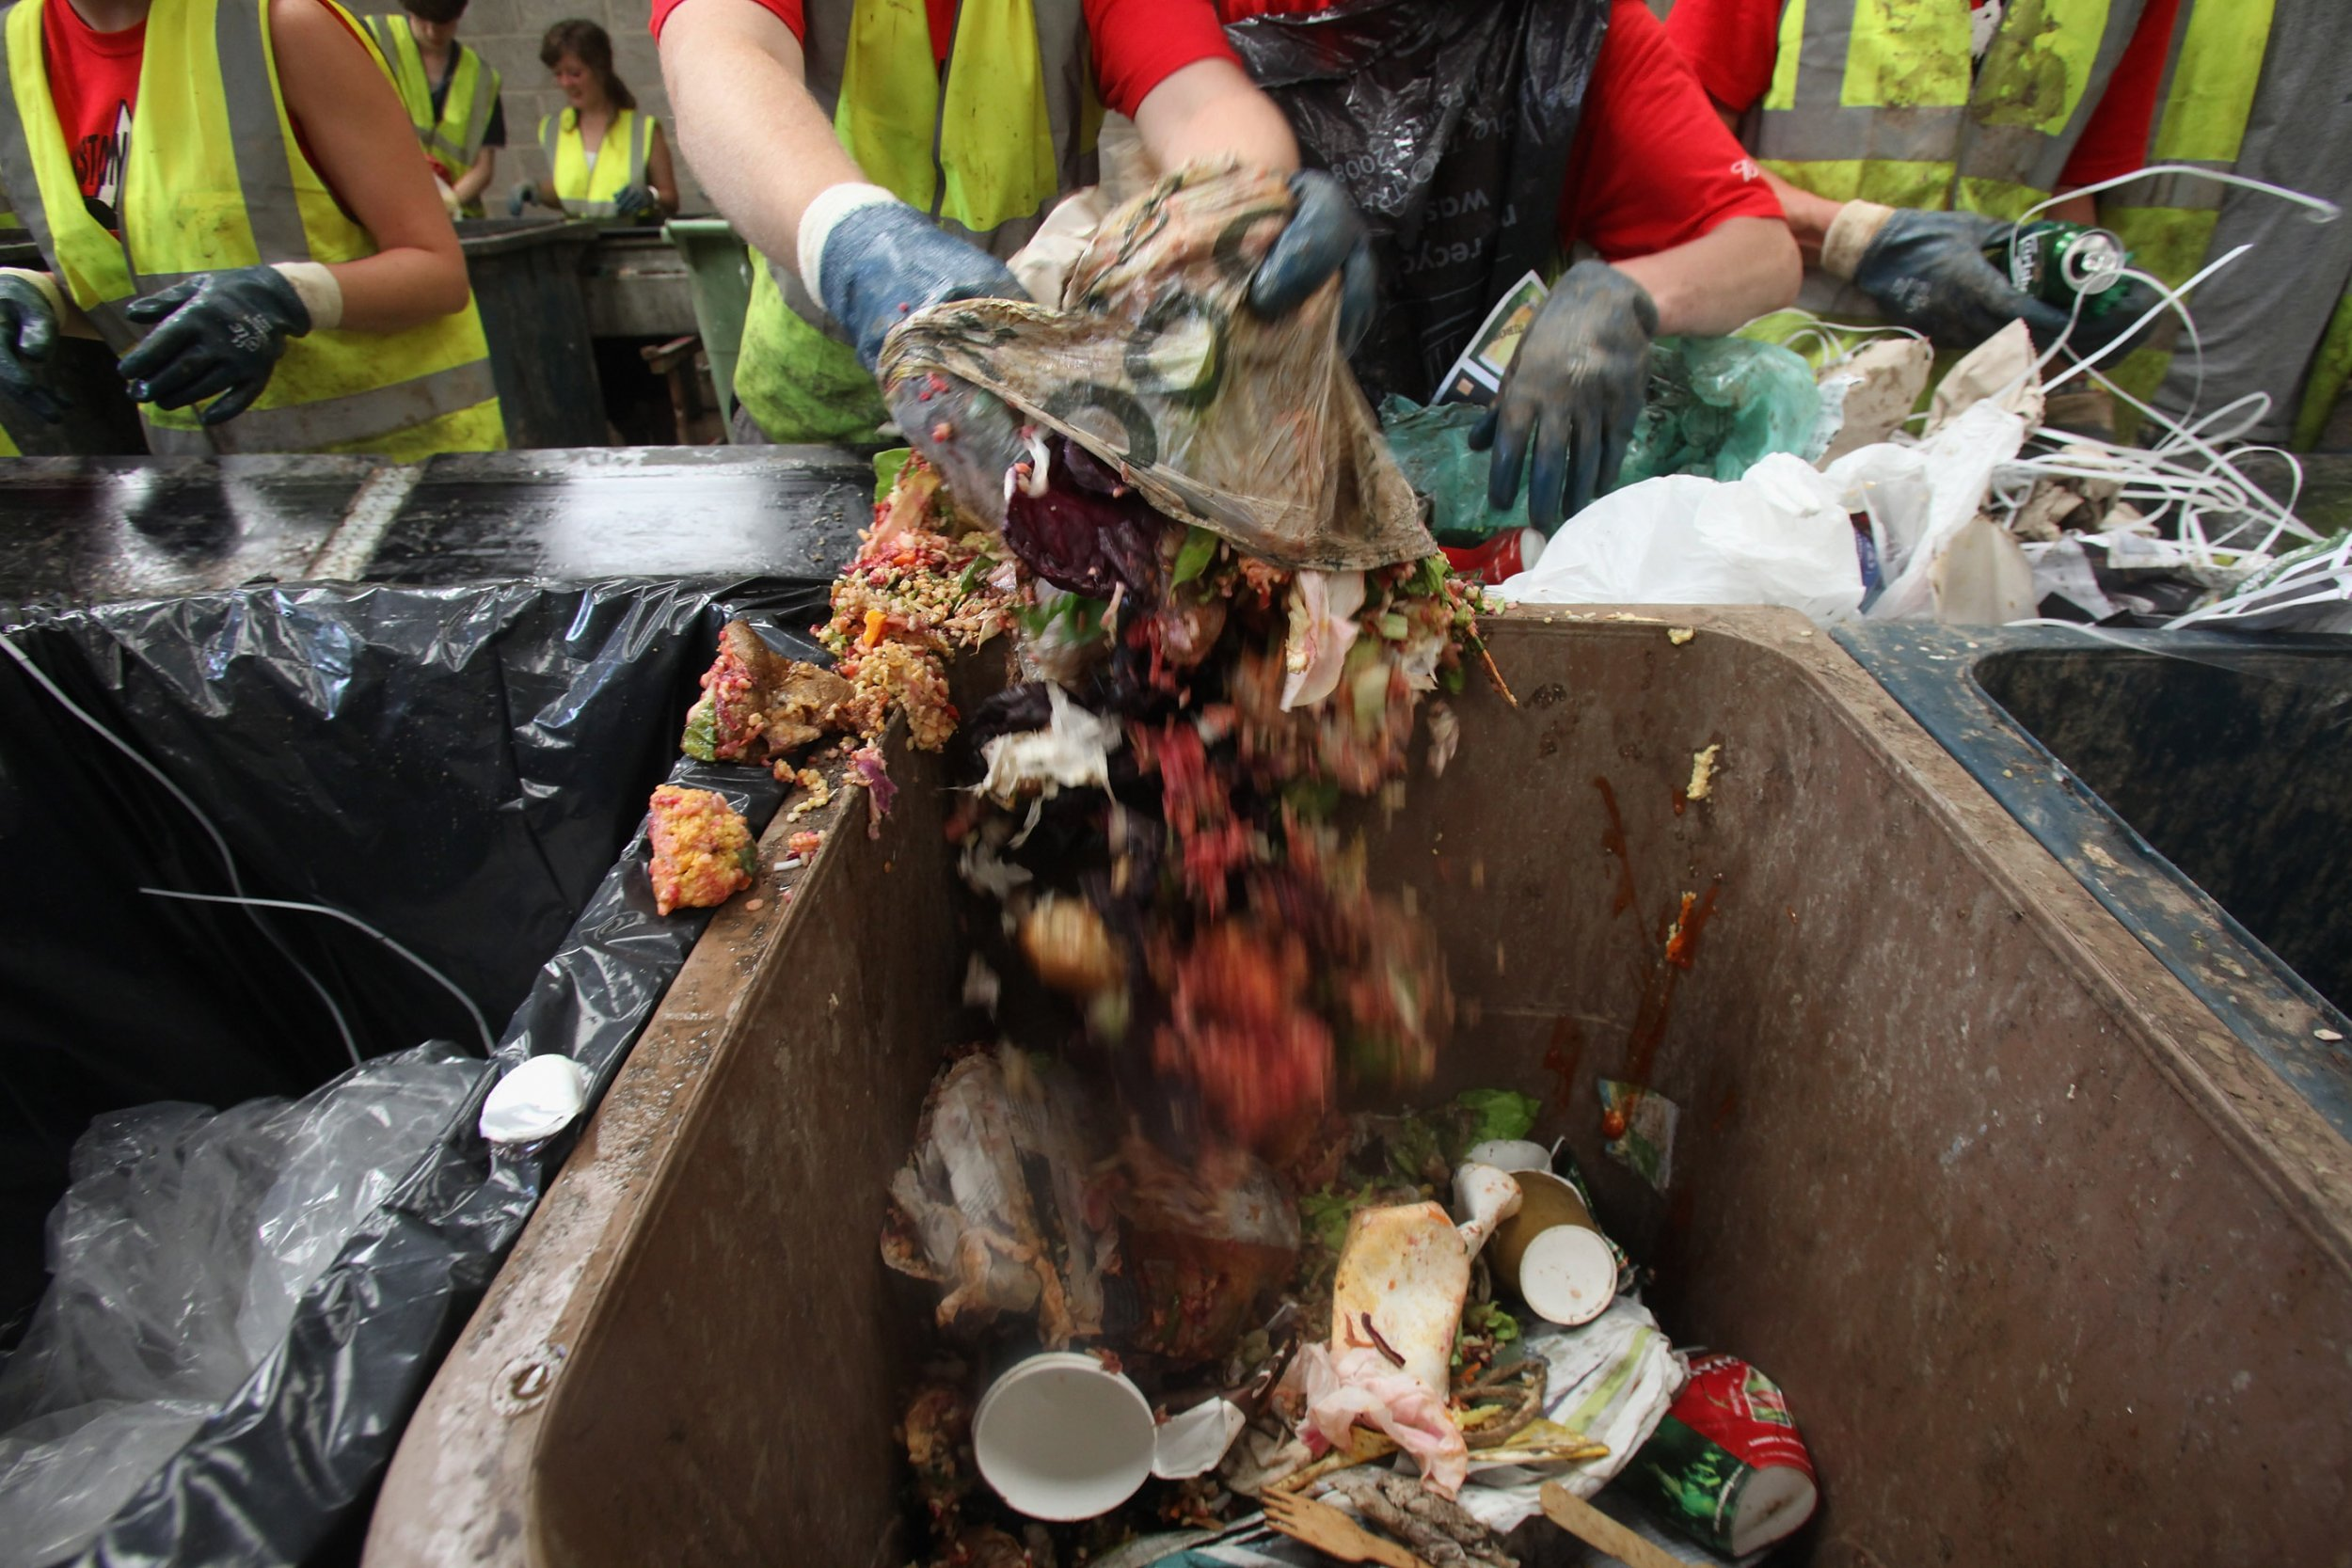 Rubbish being recycled